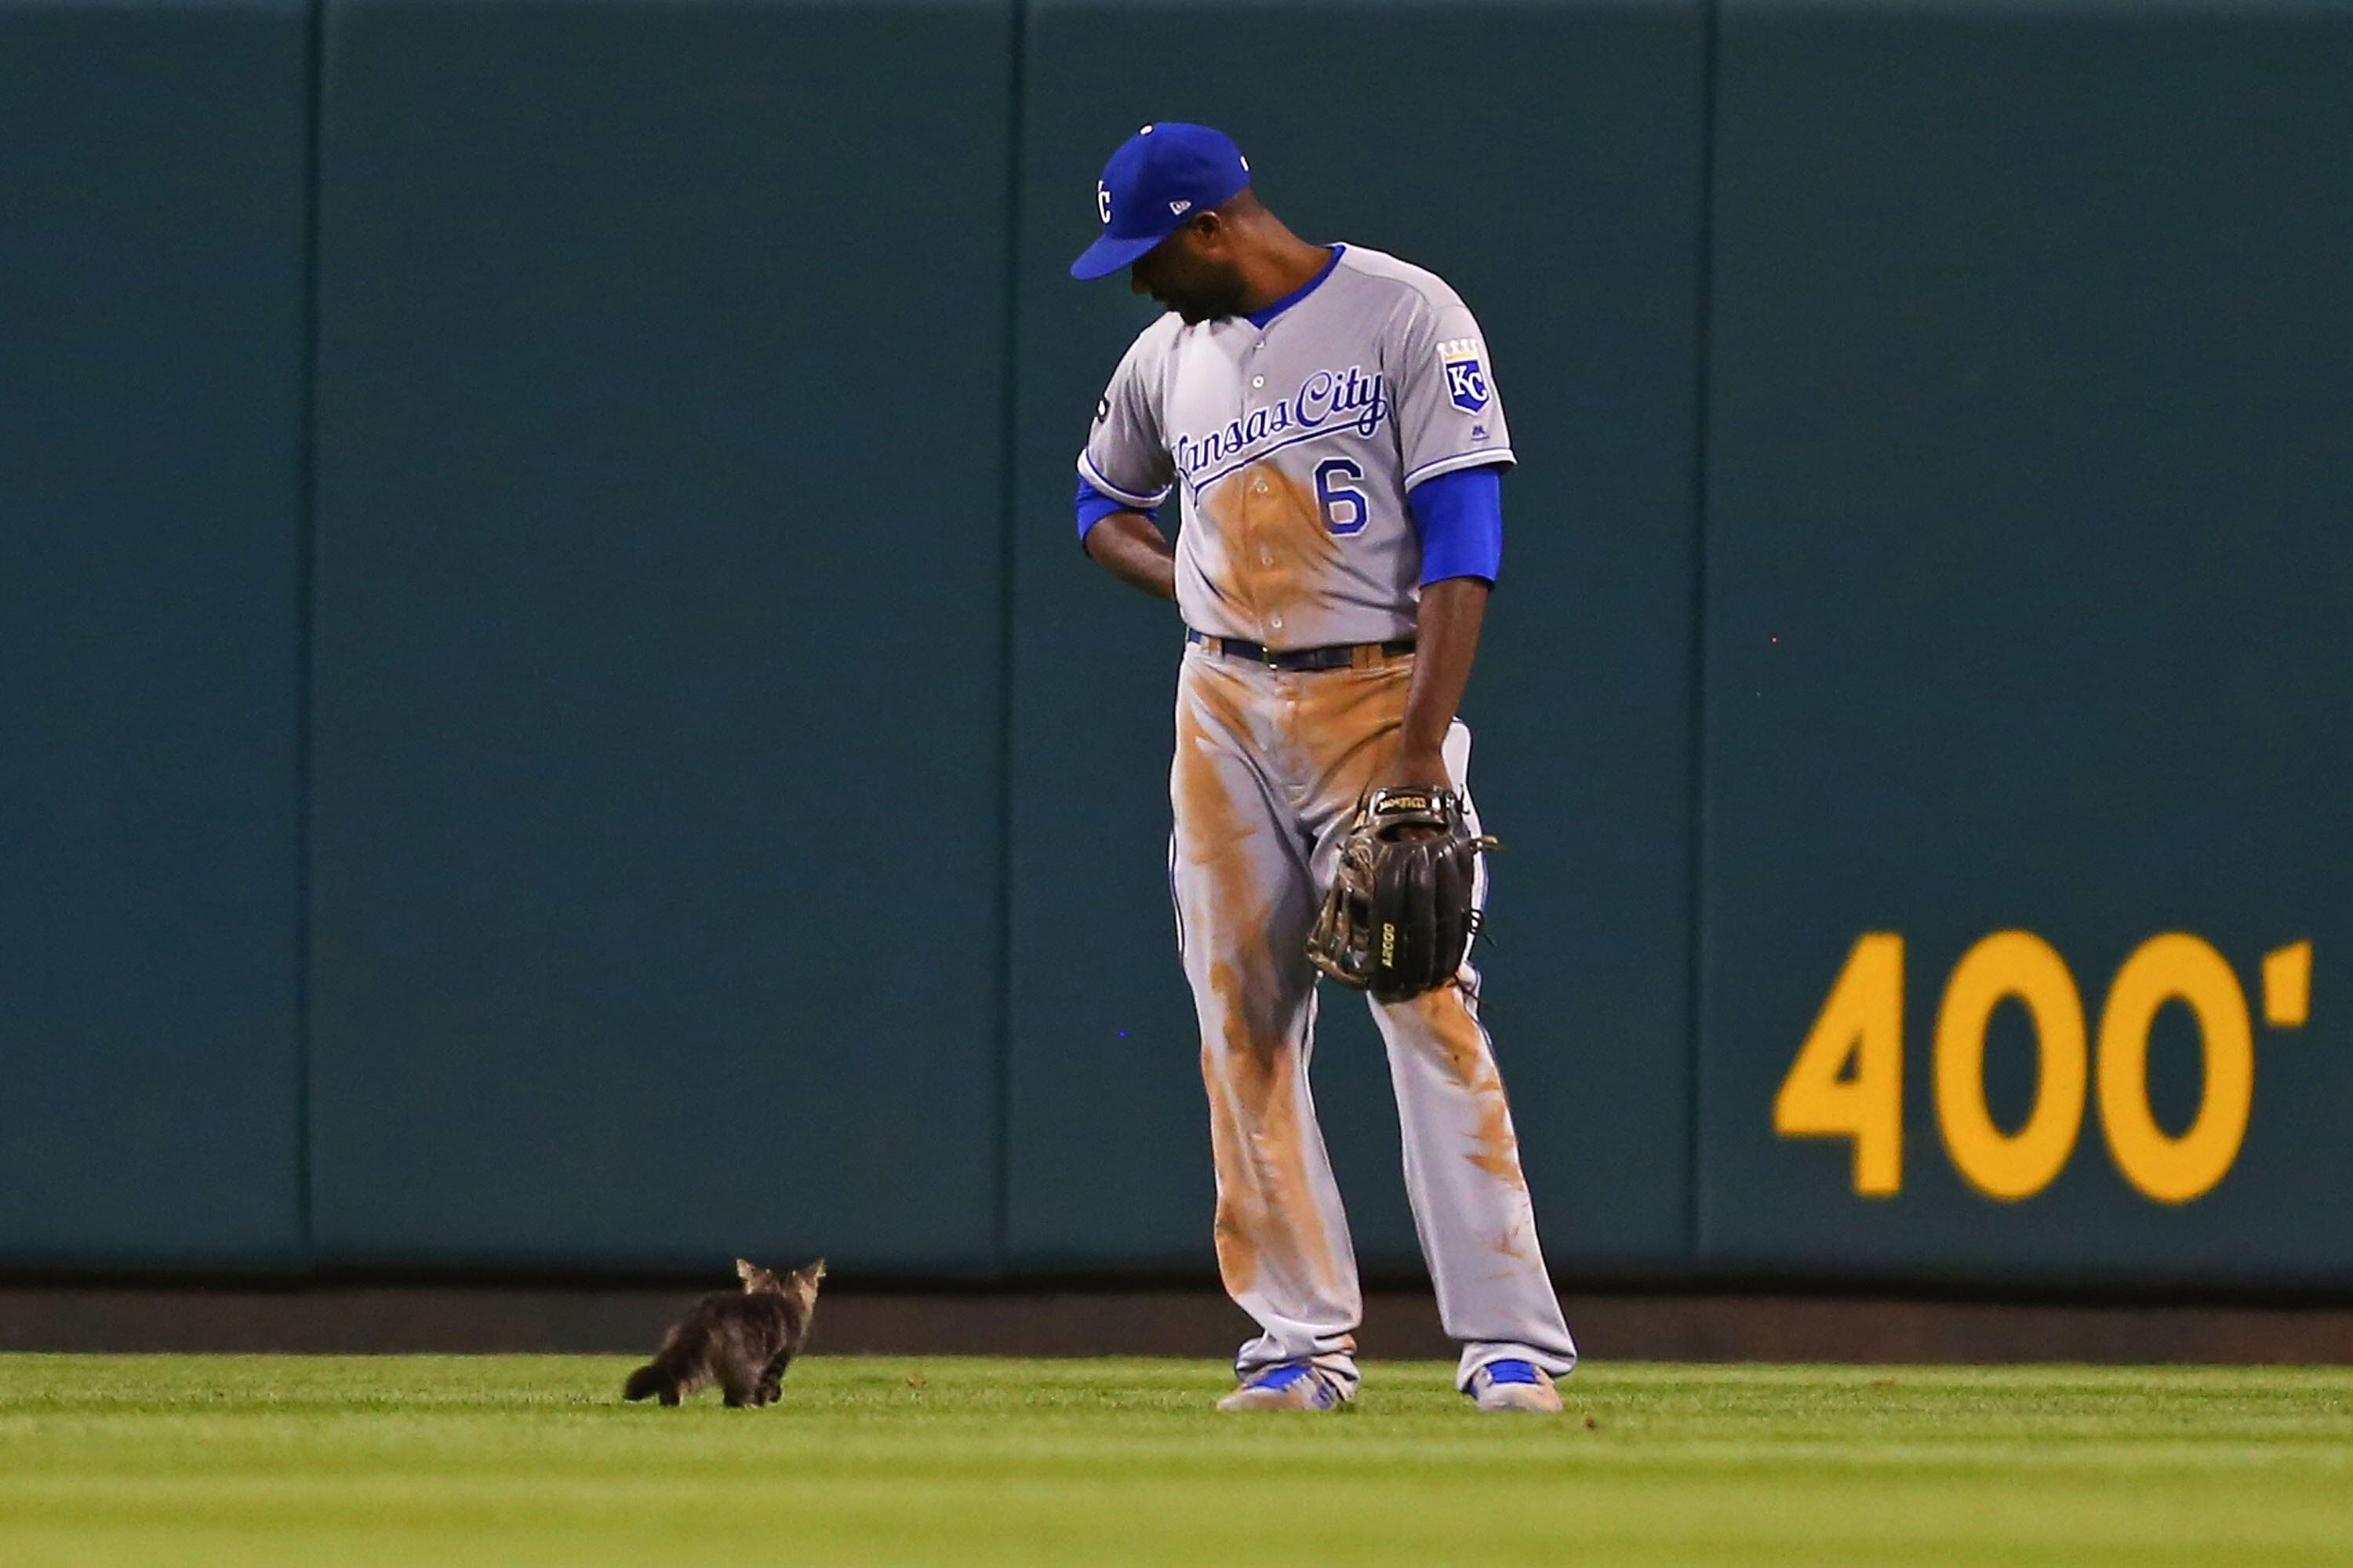 Dodgers Signing Lorenzo Cain Is The Best Move This Offseason